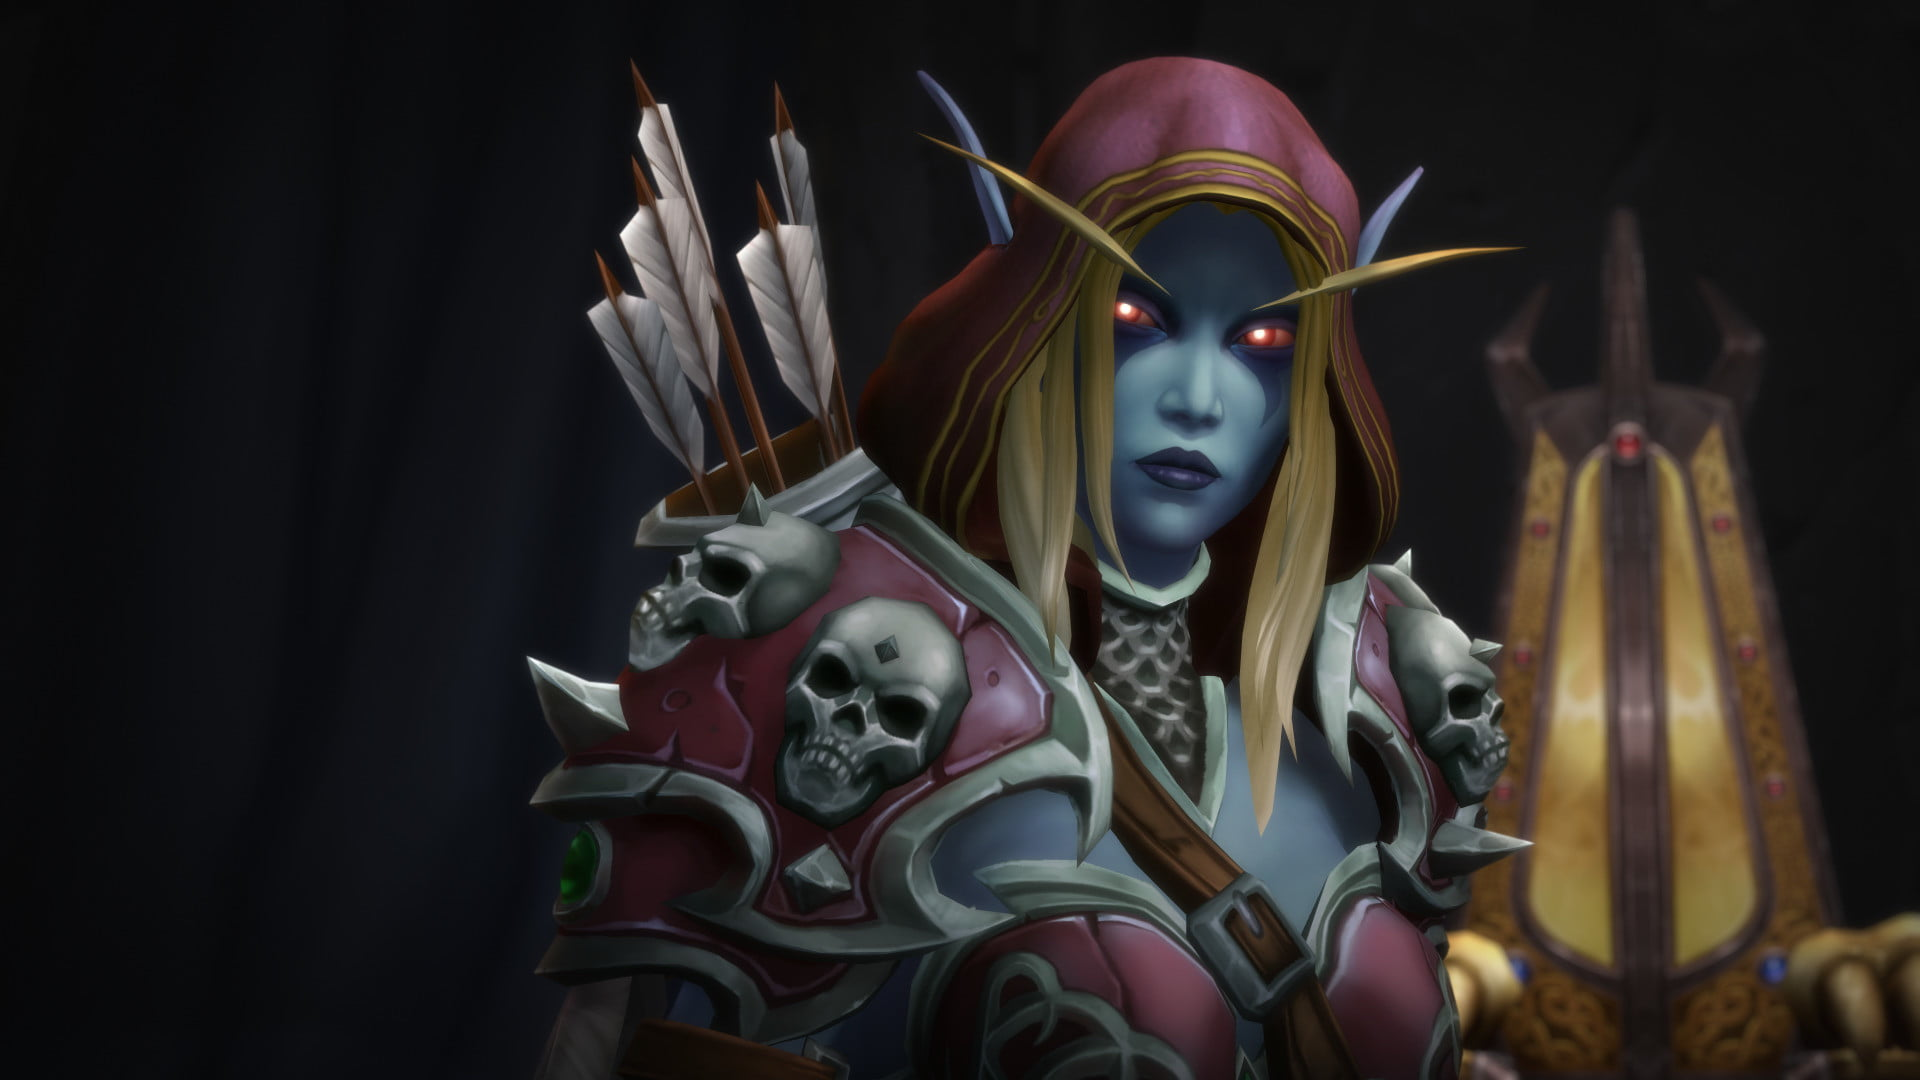 'Battle for Azeroth' lets you play Warcraft without canceling evening plans